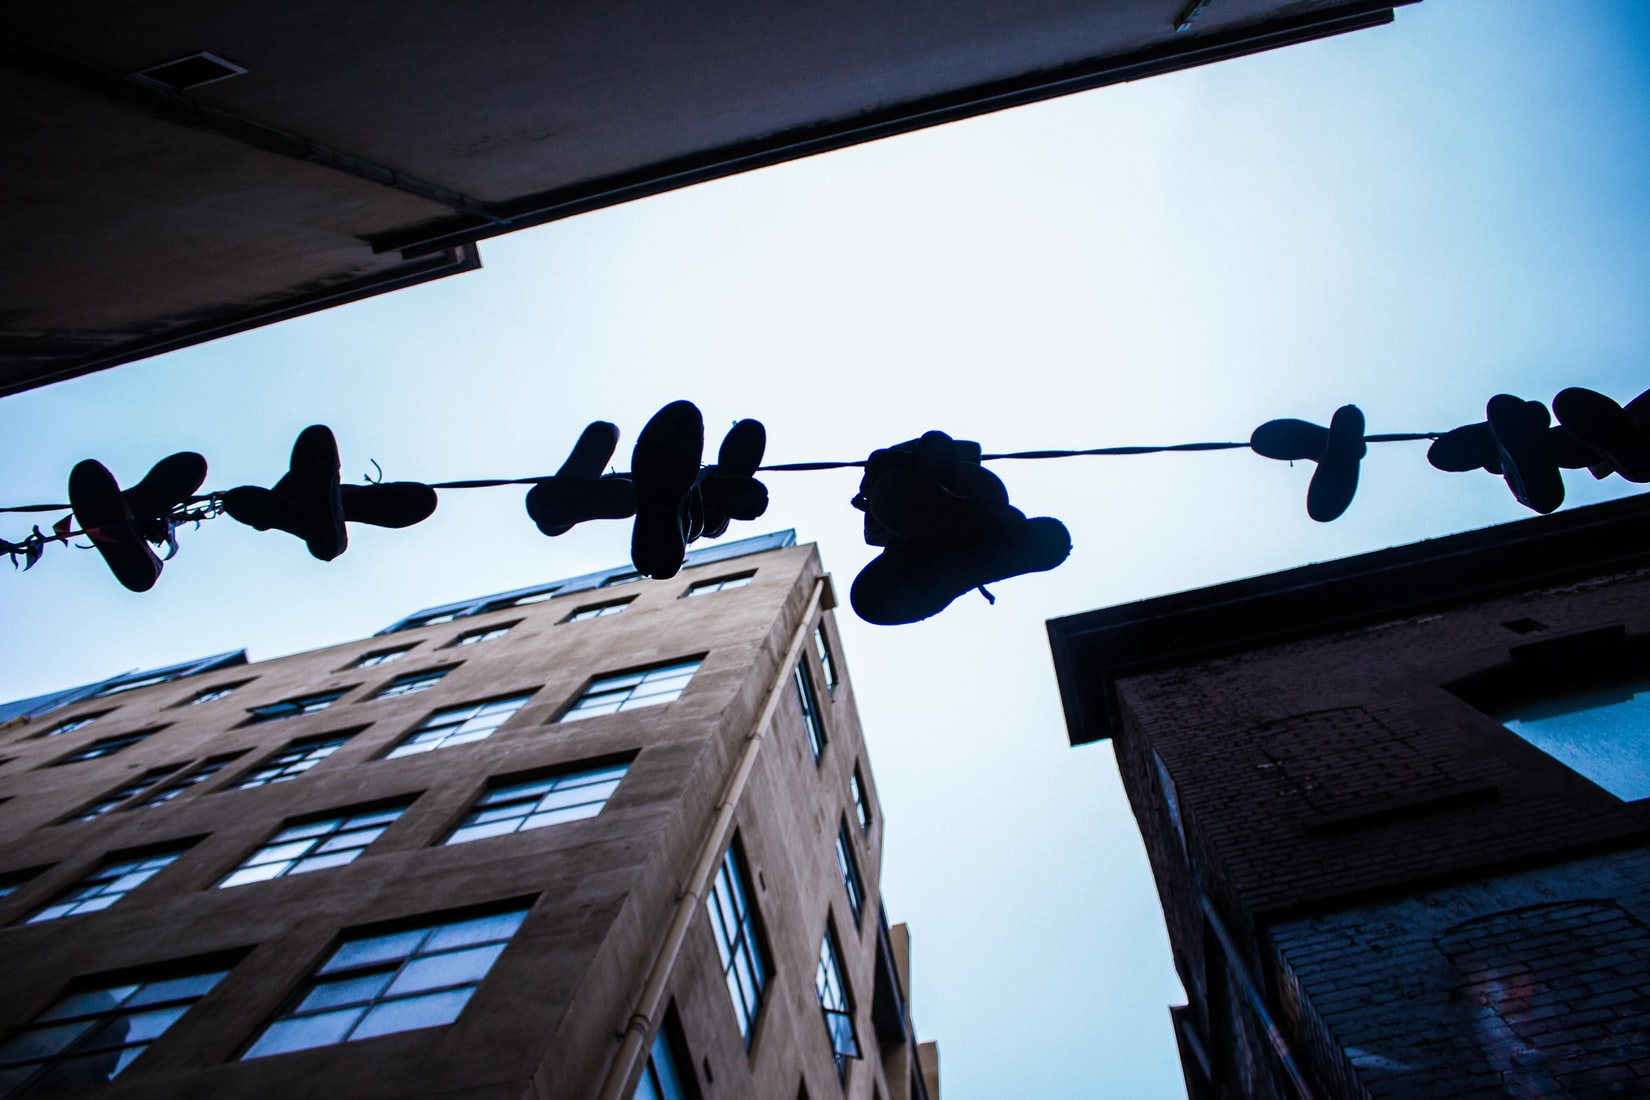 Low-angle photo of hanged shoes on wire next to buildings during daytime